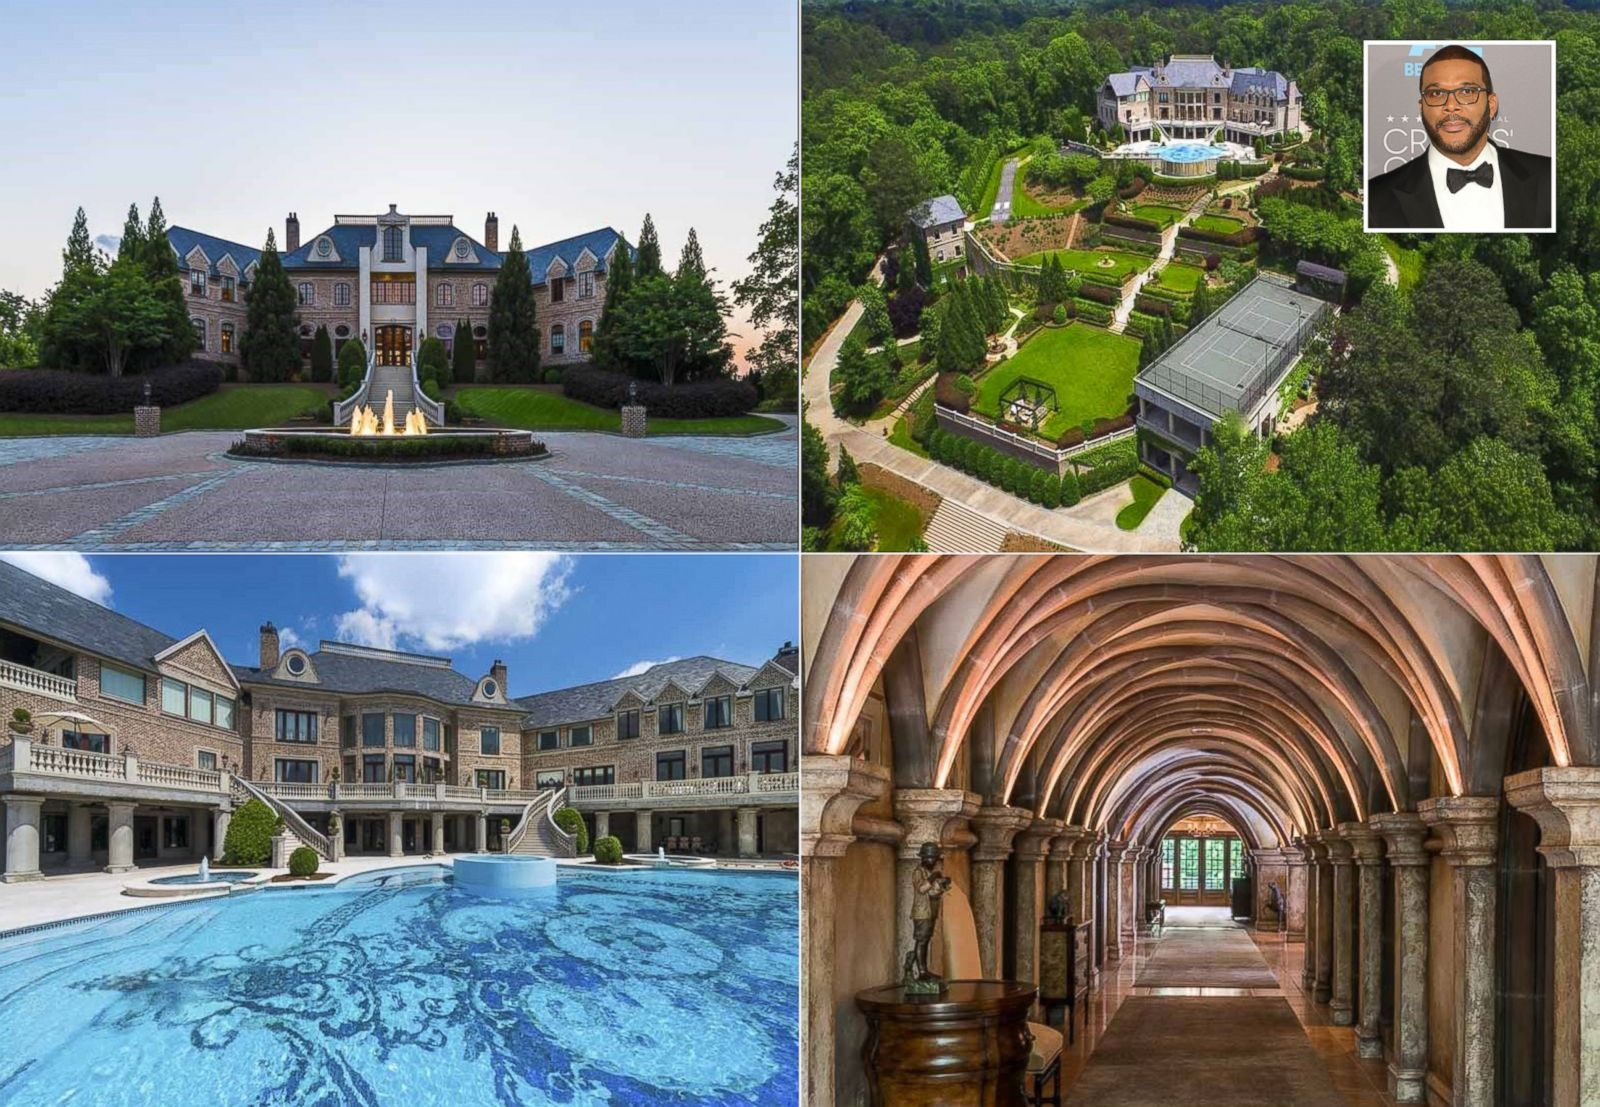 91266144 furthermore Home Alone House Address Evanston further Image Tyler Perry Lists Atlanta Mega Mansion 25 Million 31946581 as well Own 30 Room Mansion 30k 225110169 moreover Oscar Meyer Mansion Evanston. on oscar mayer mansion in chicago